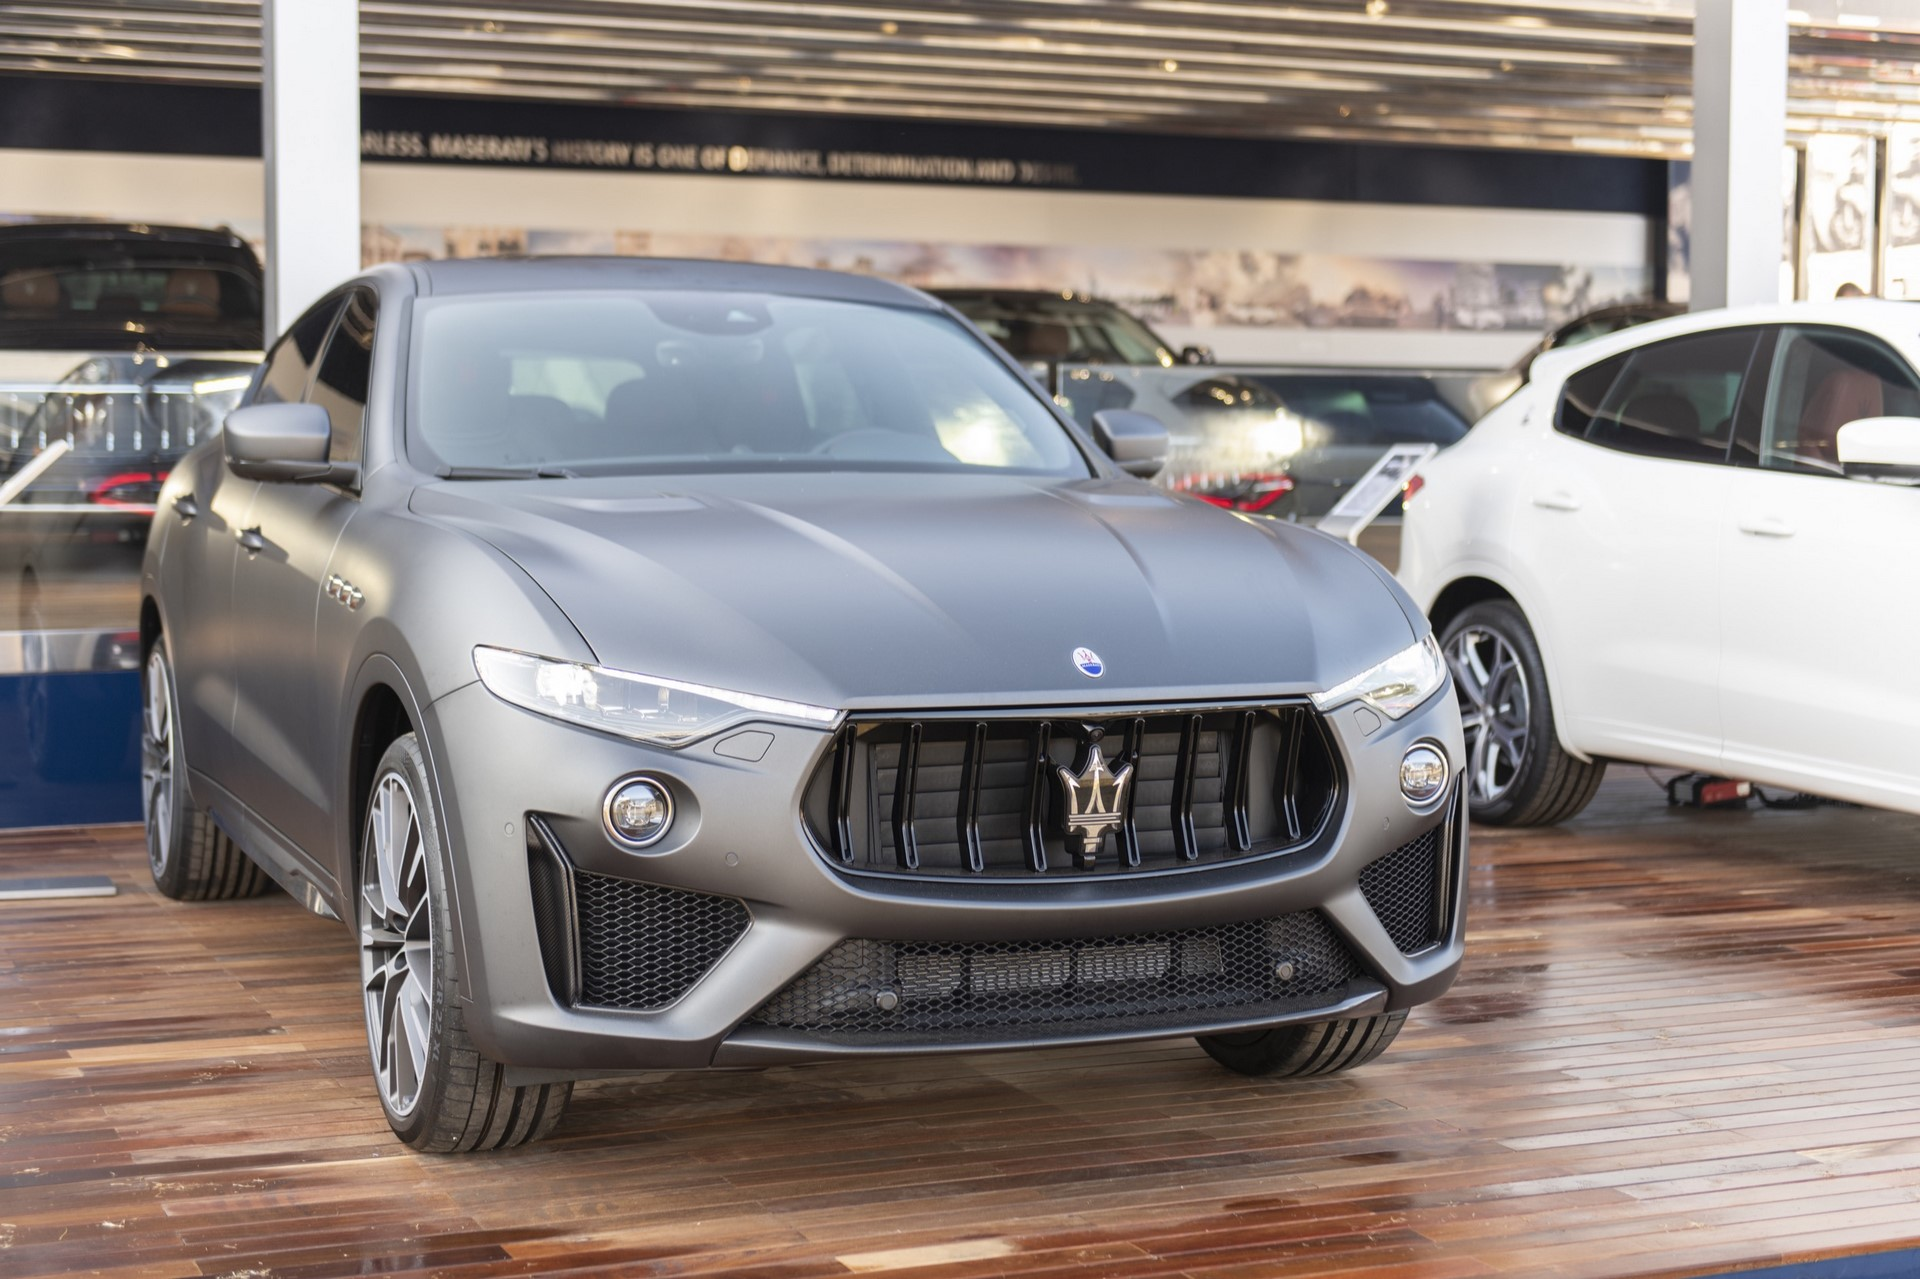 Maserati Levante Trofeo - Maserati at Goodwood Festival of Speed